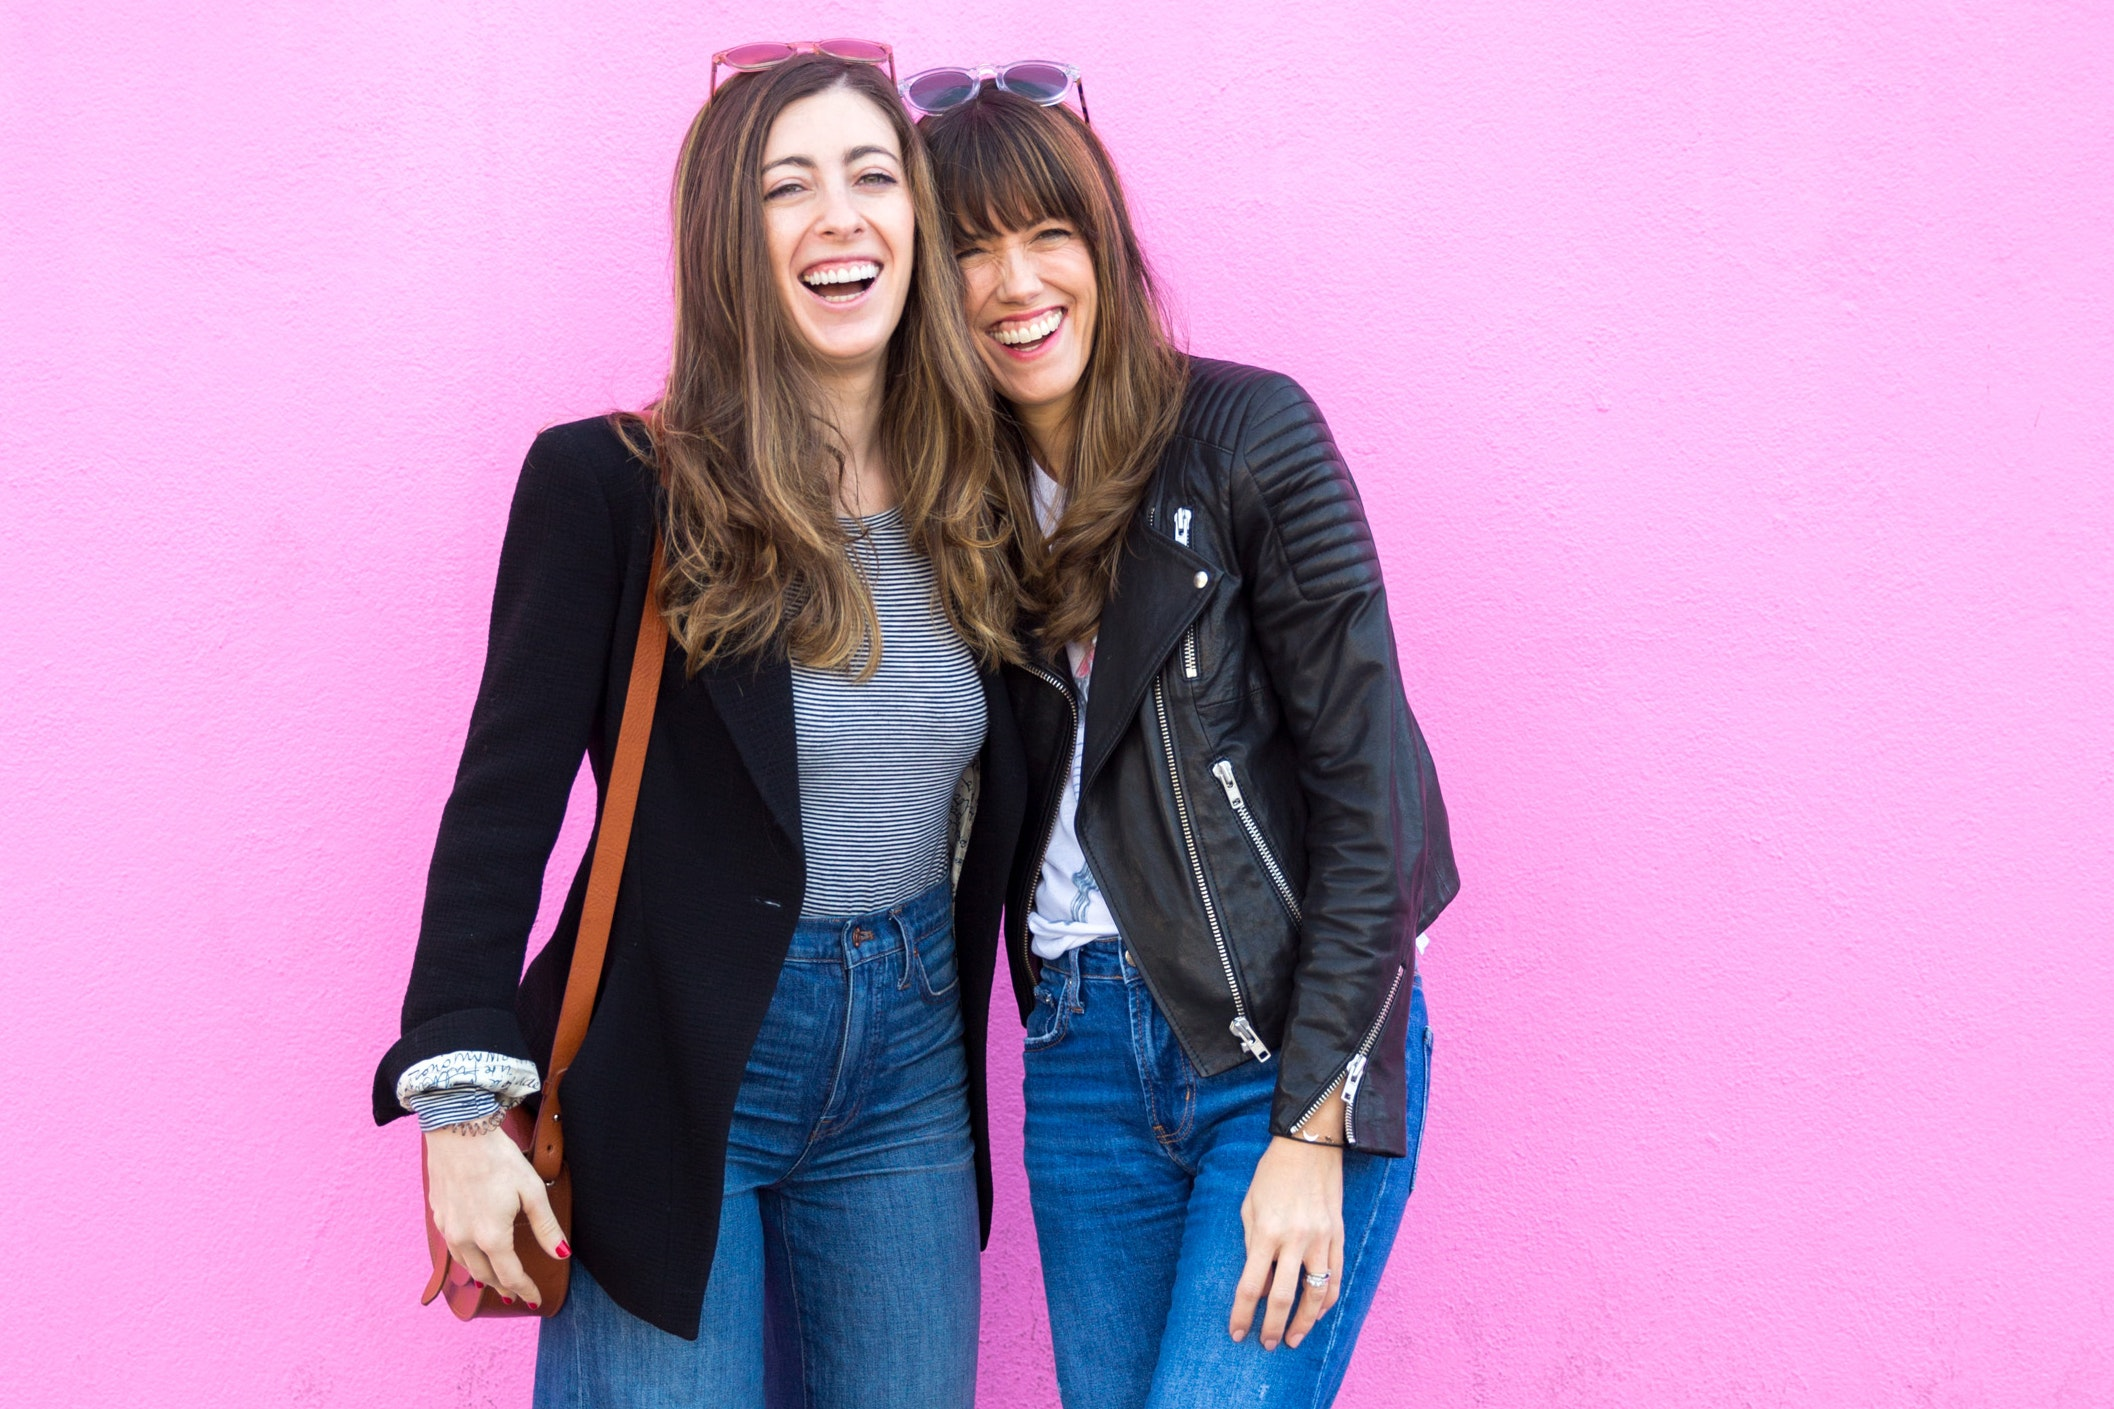 A Candid Conversation About Beauty, Motherhood, and Business With the Founders of Heymama